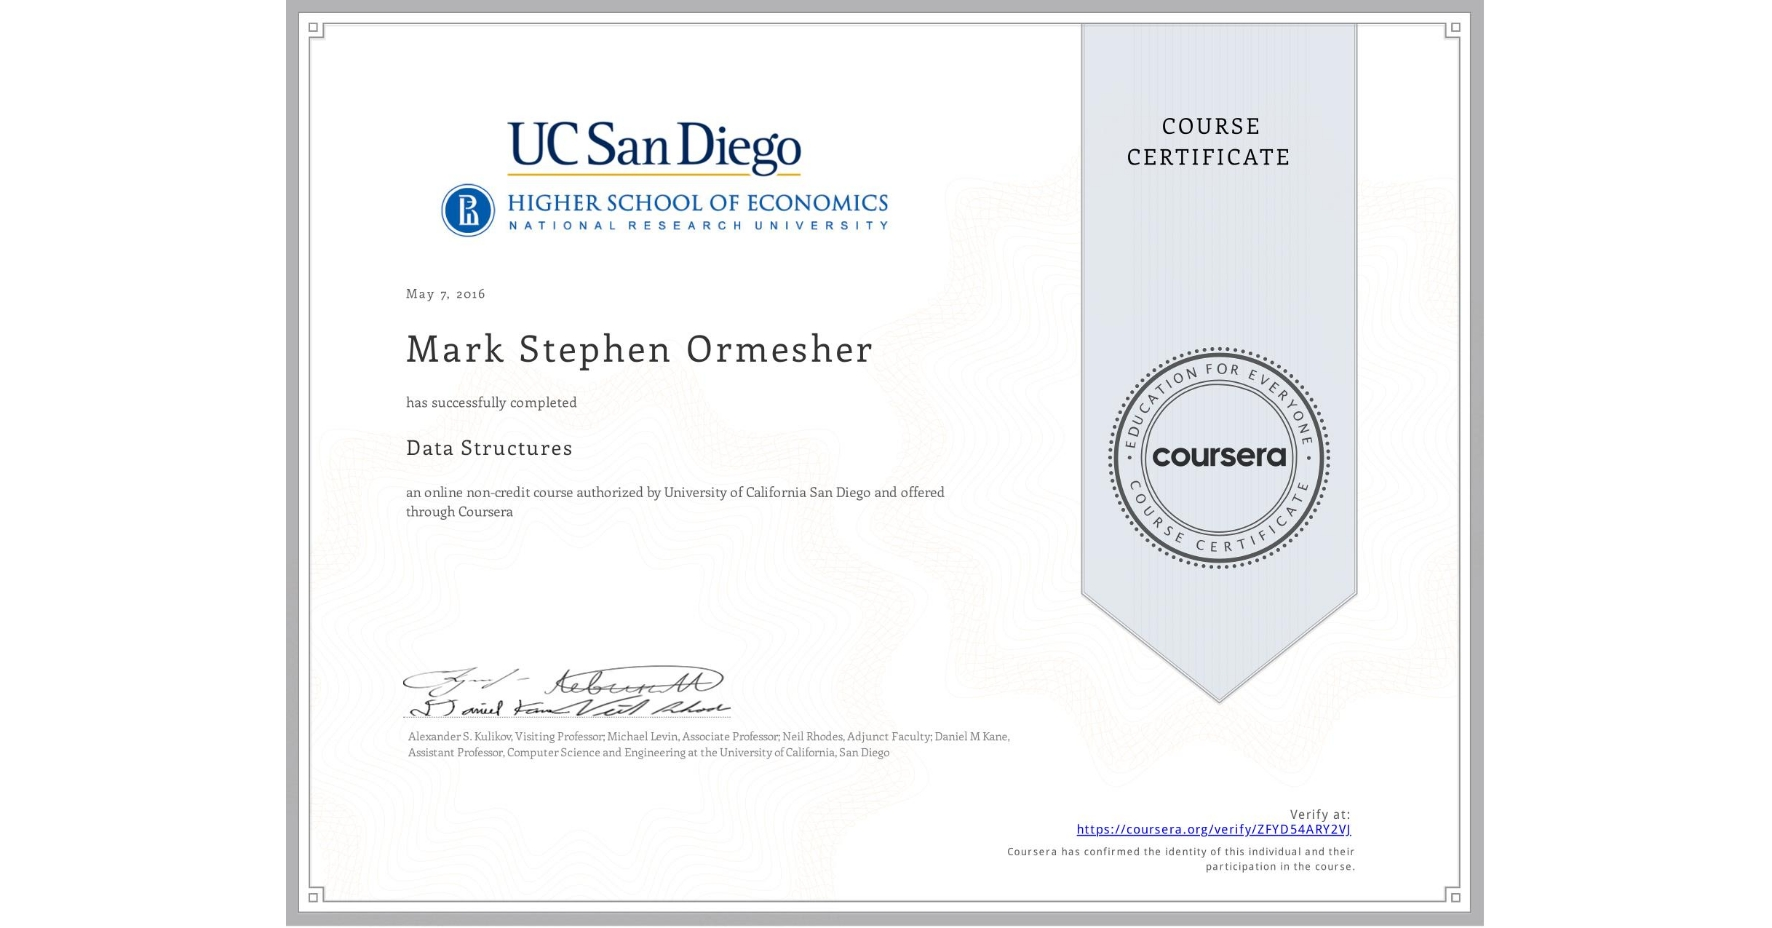 View certificate for Mark Stephen Ormesher, Data Structures, an online non-credit course authorized by University of California San Diego & National Research University Higher School of Economics and offered through Coursera